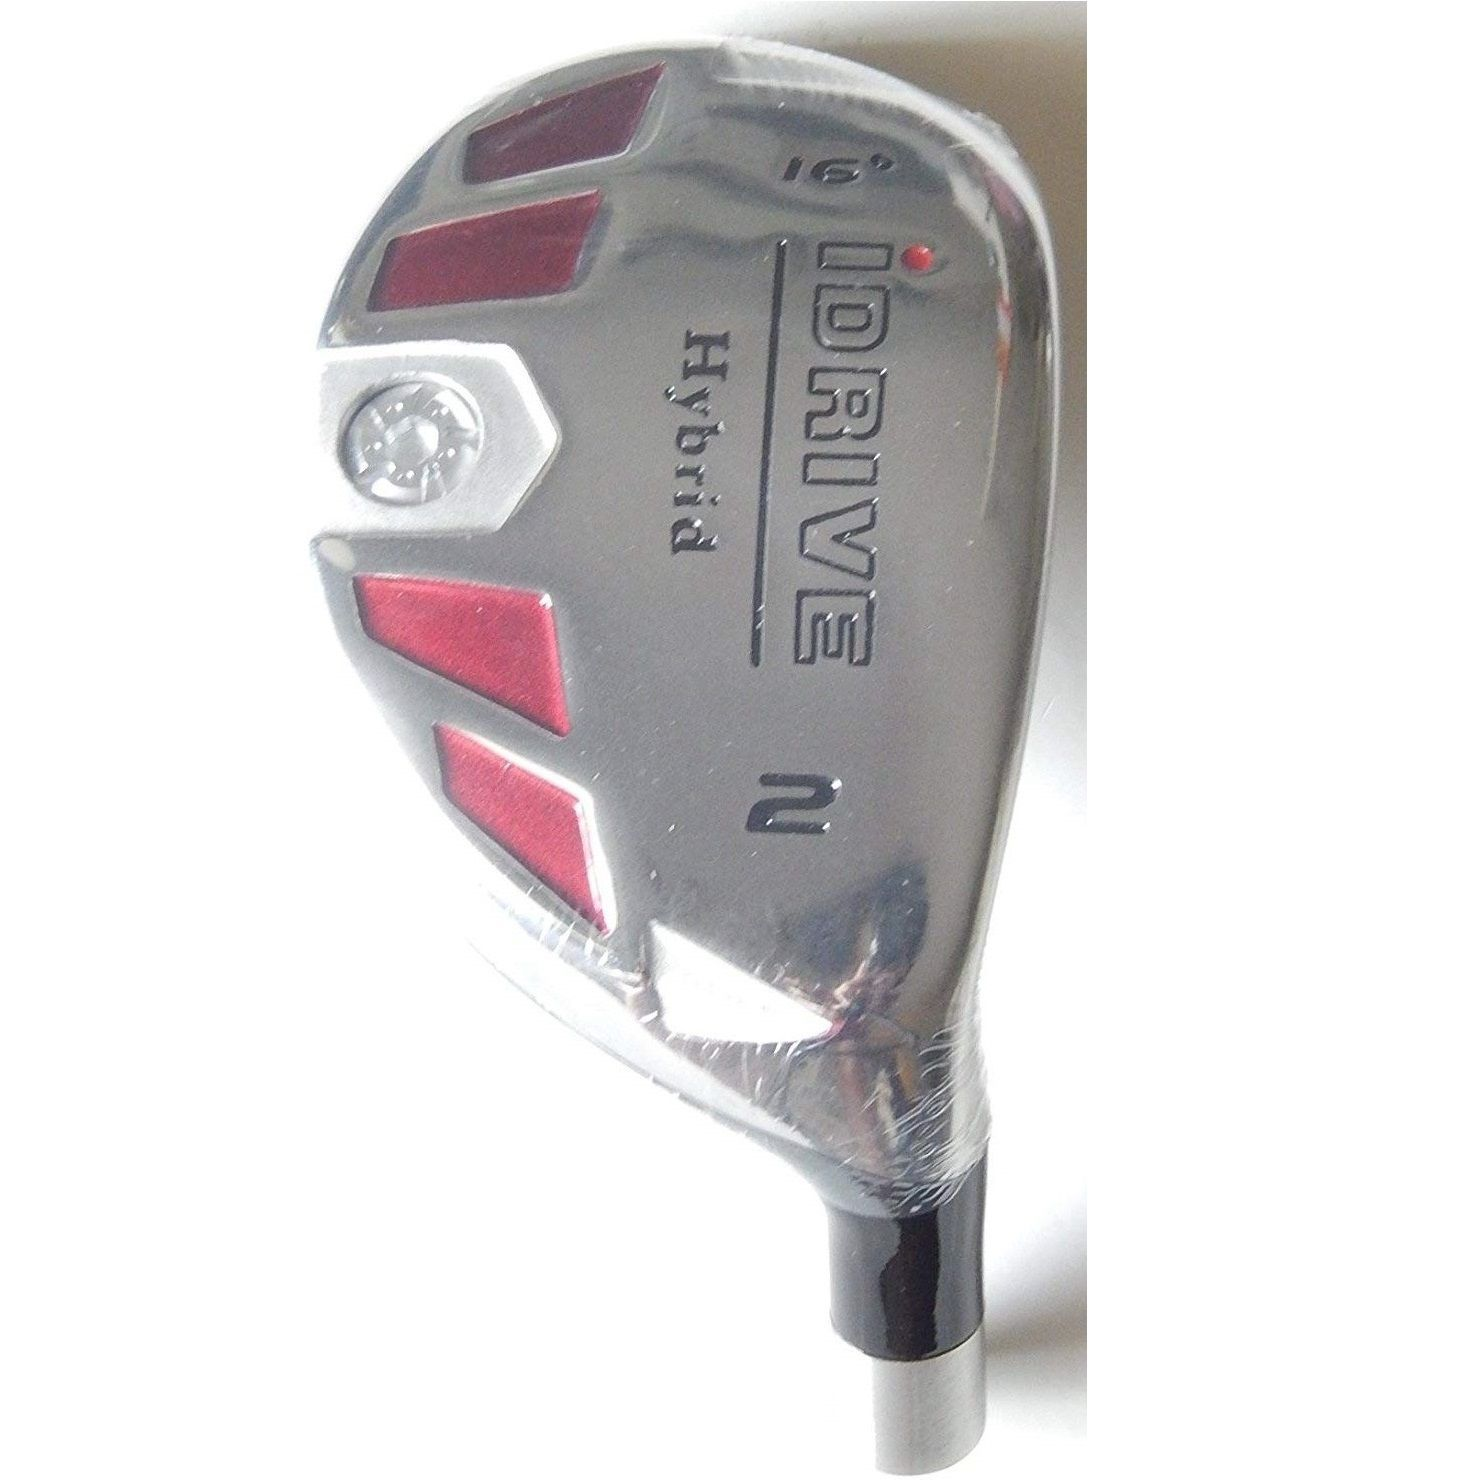 Best Golf Wedges 2020 Top 10 best hybrid golf clubs 2019 review. Reviews and guides for